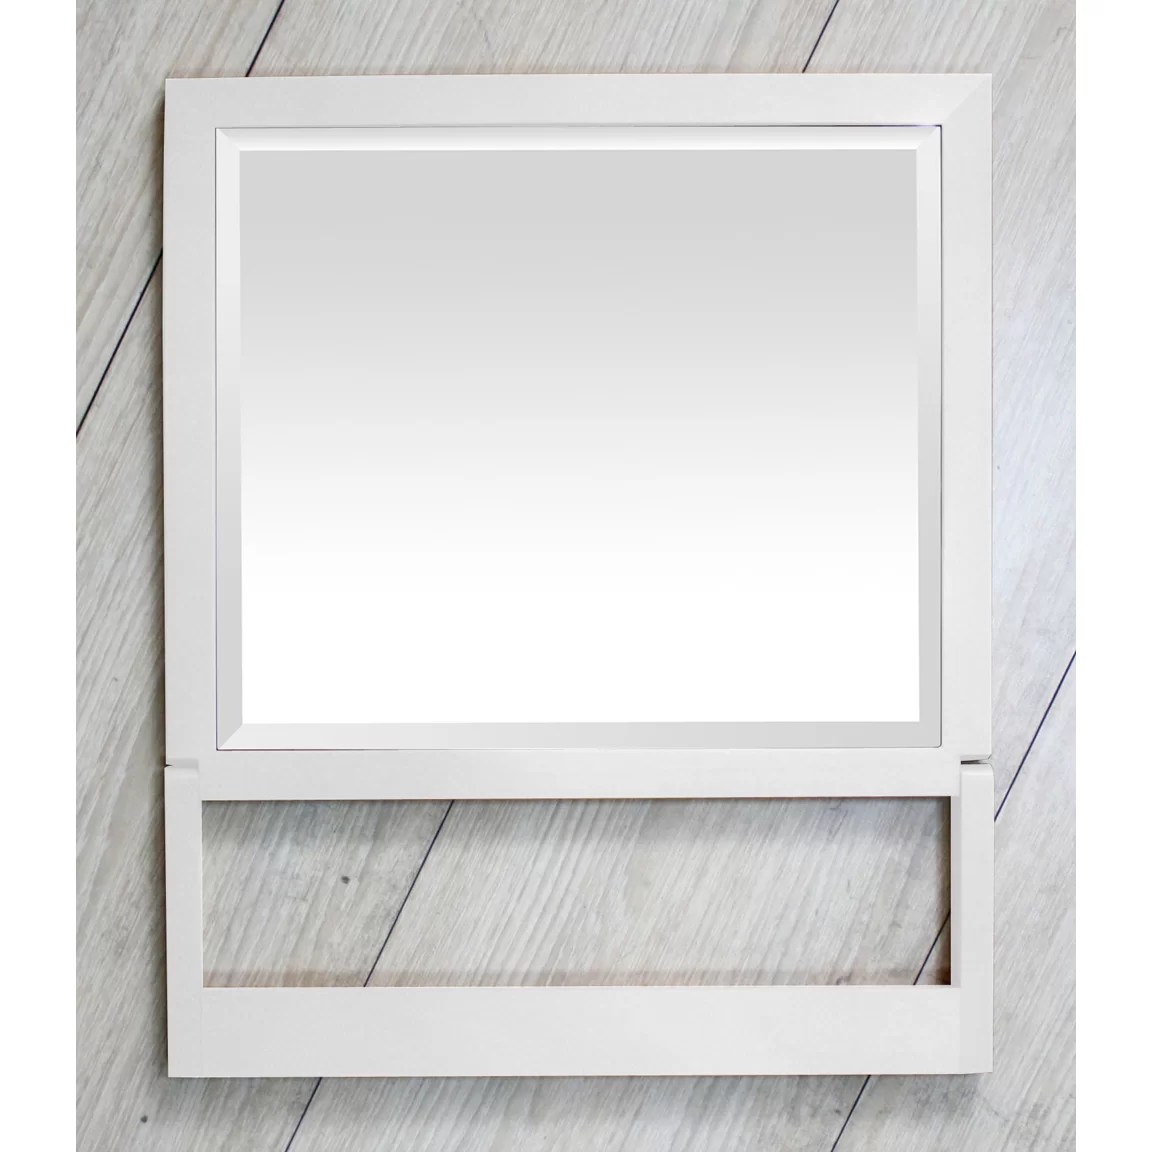 Free Standing Bathroom Mirrors Dcor Design Free Standing Folding Bathroom Travel Mirror